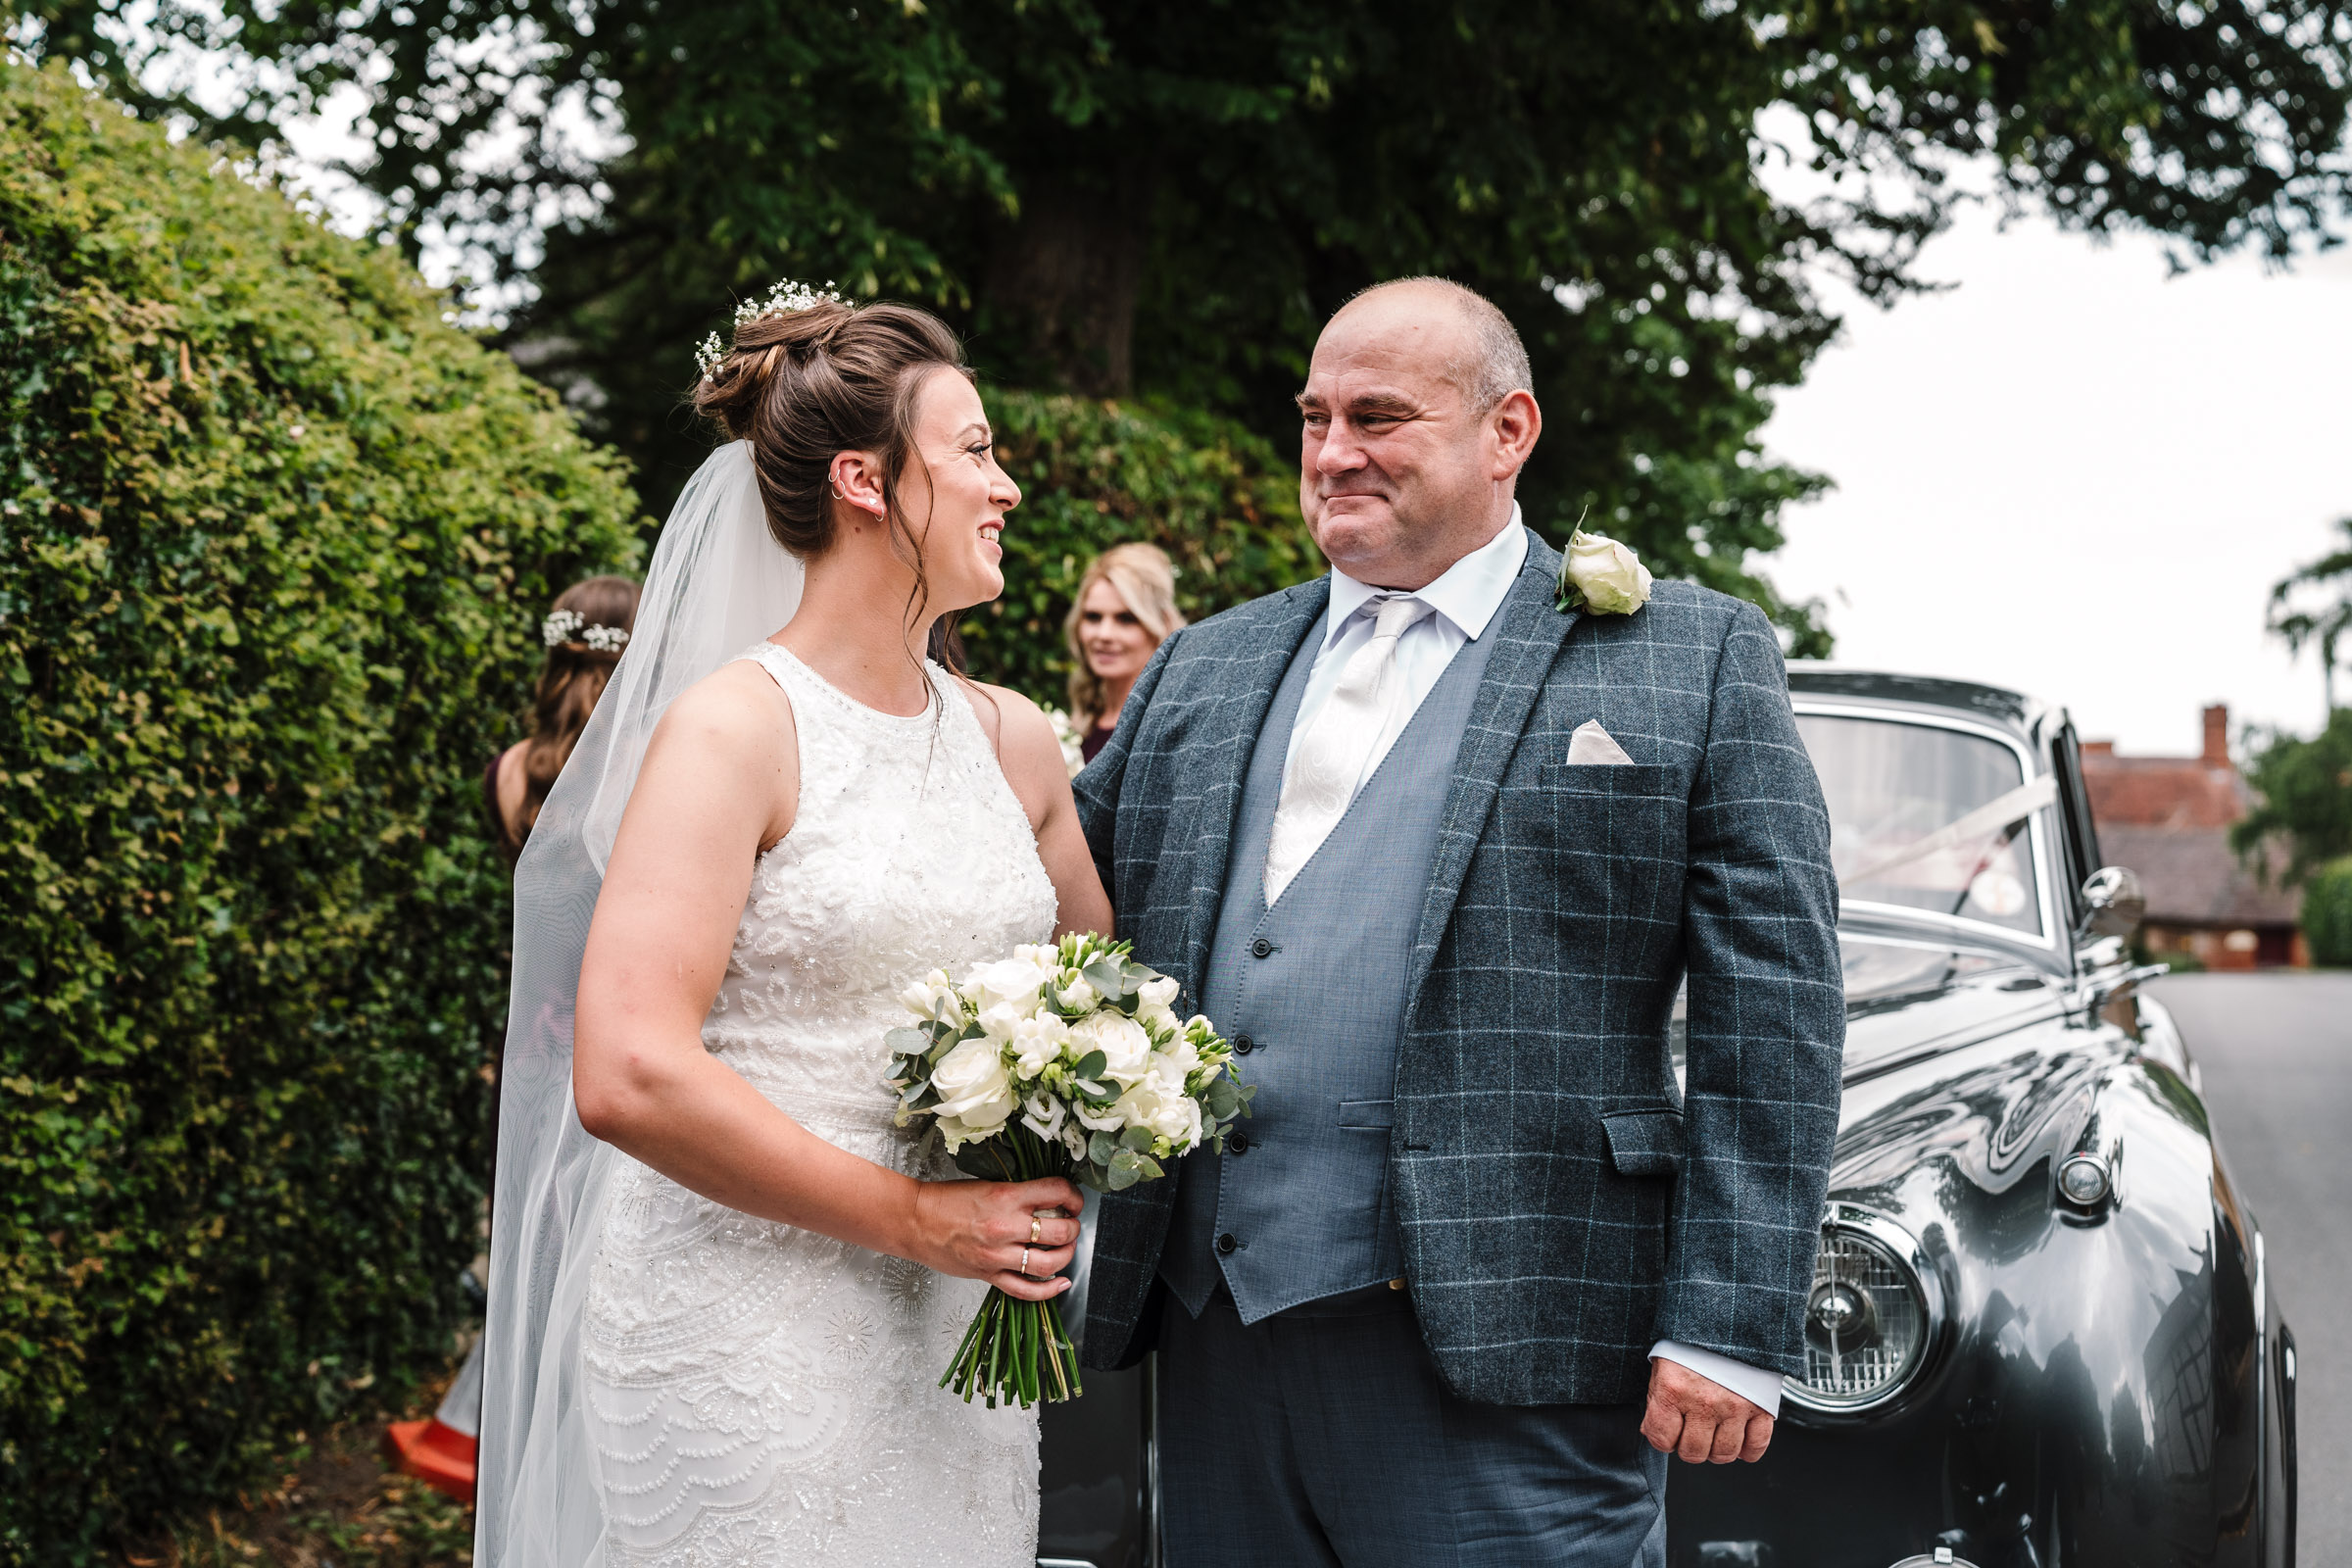 proud dad smiling at his daughter as they get ready to enter church wedding